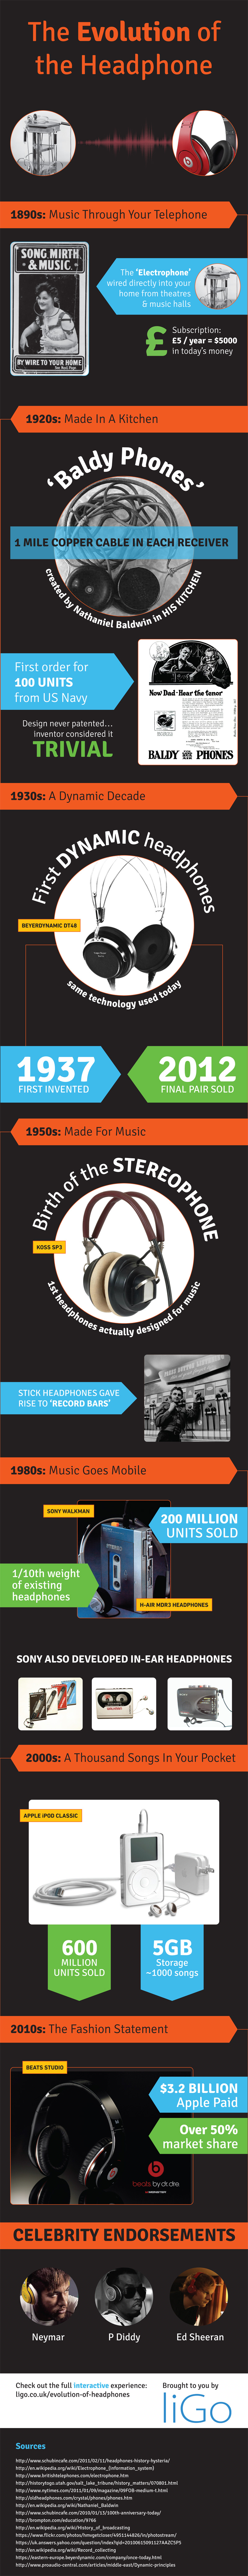 Headphone-Infographic